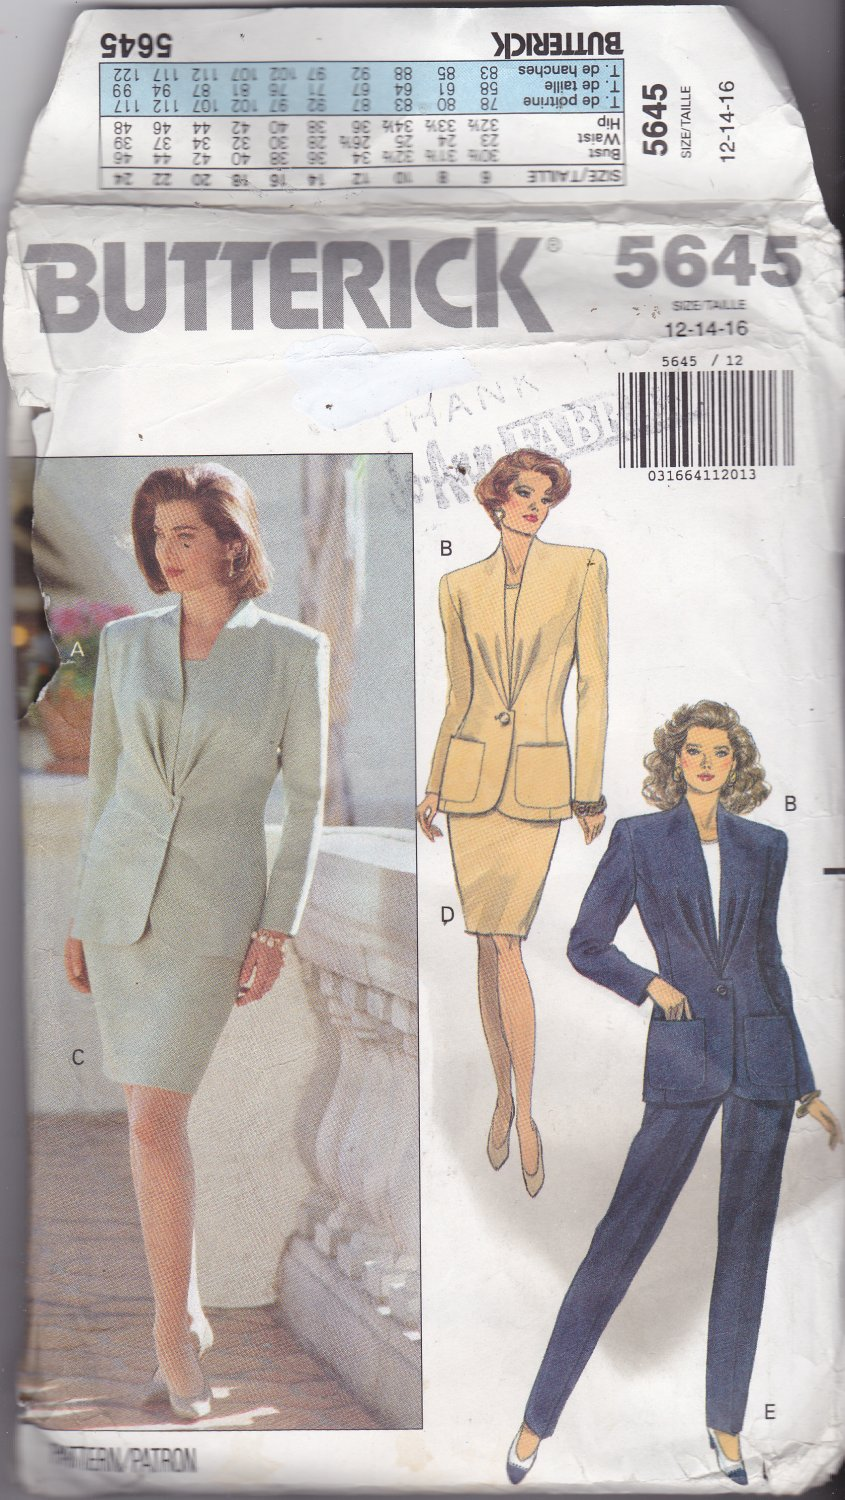 Butterick 5645 PatternJacket Skirt Pants 12 14 16, may be missing pieces, 50 cents plus shipping